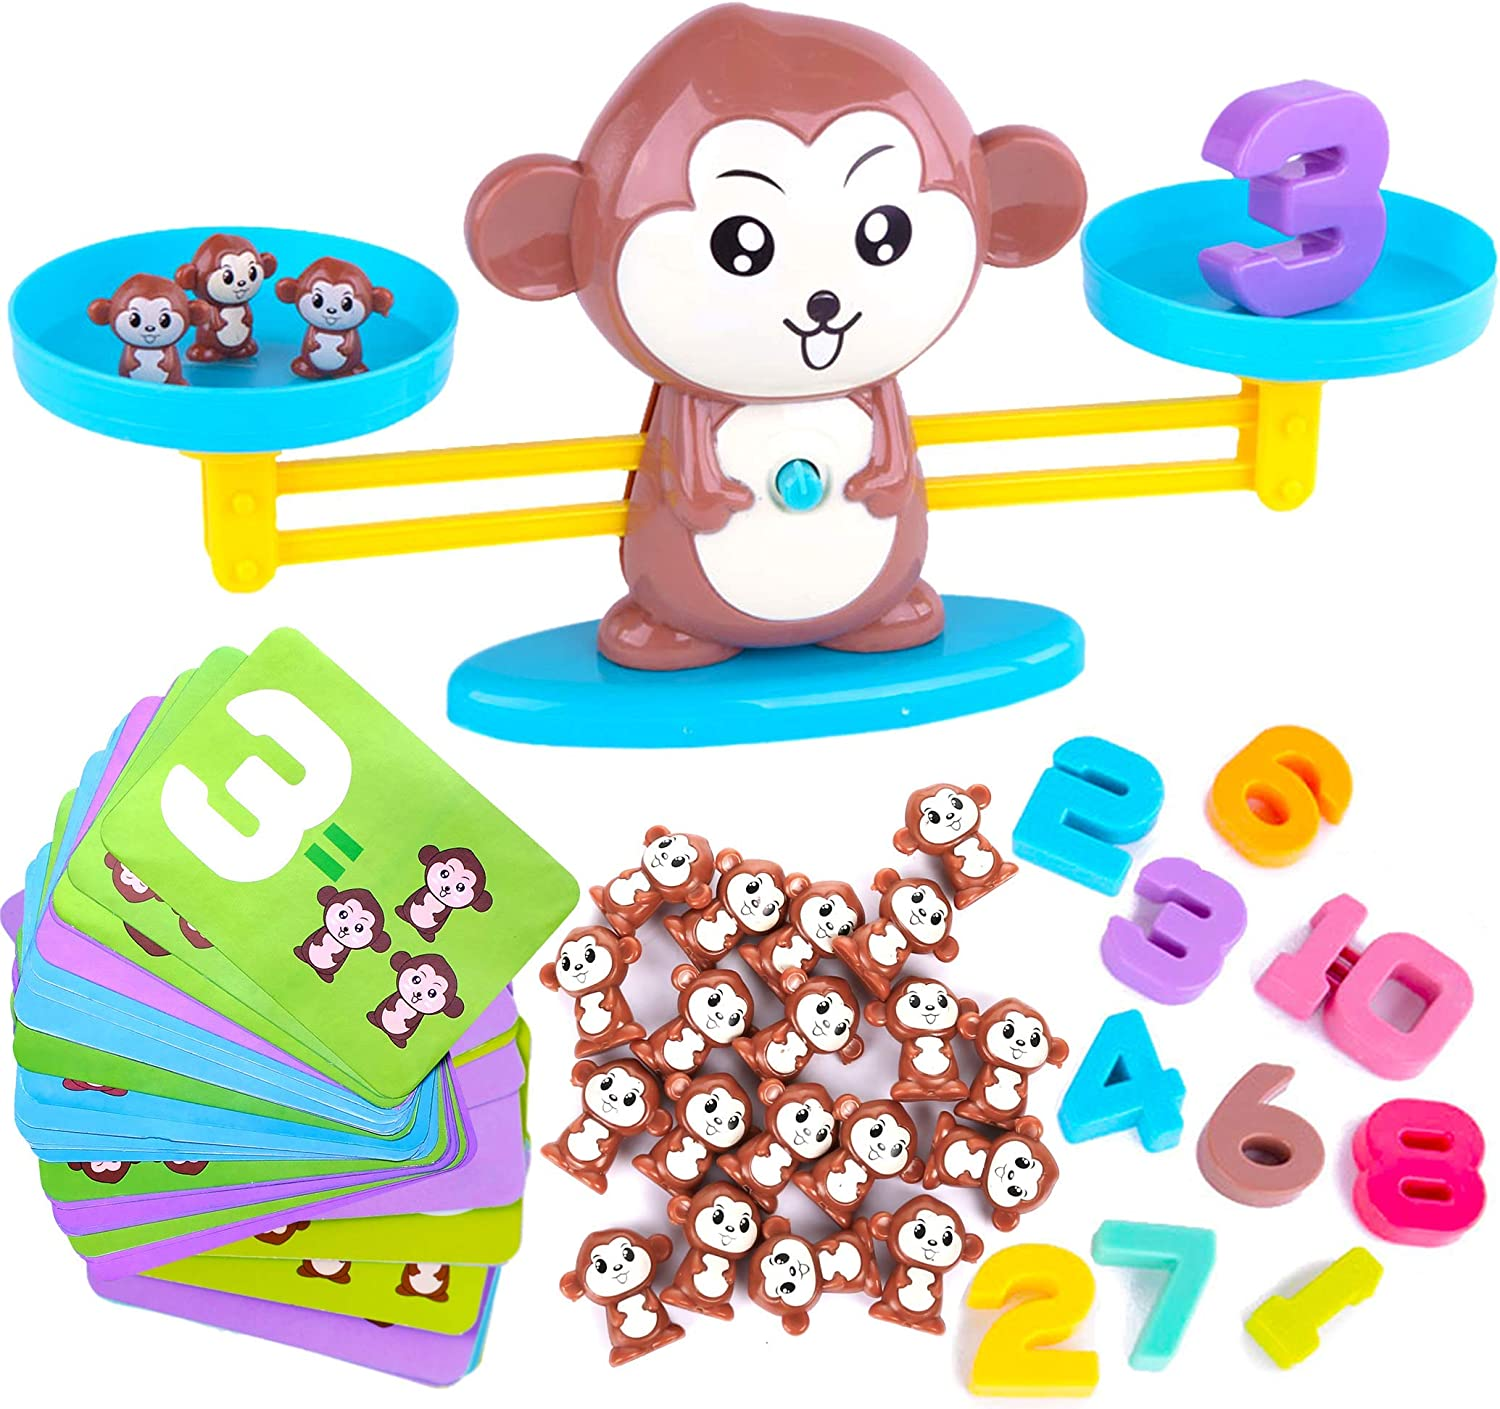 CoolToys Monkey Balance Math Game